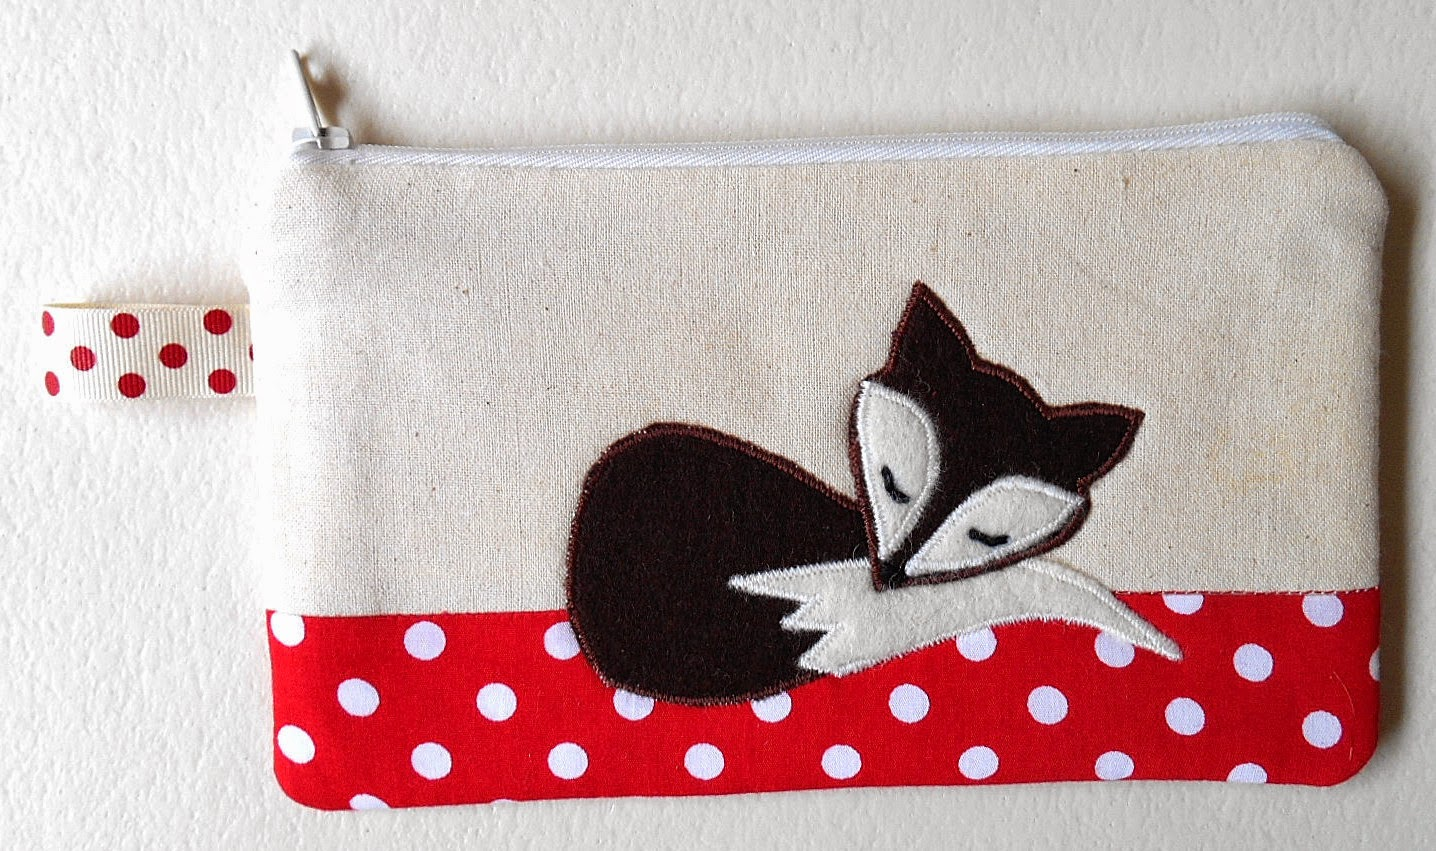 Sleeping Fox red Polka Dot Zipper Pouch